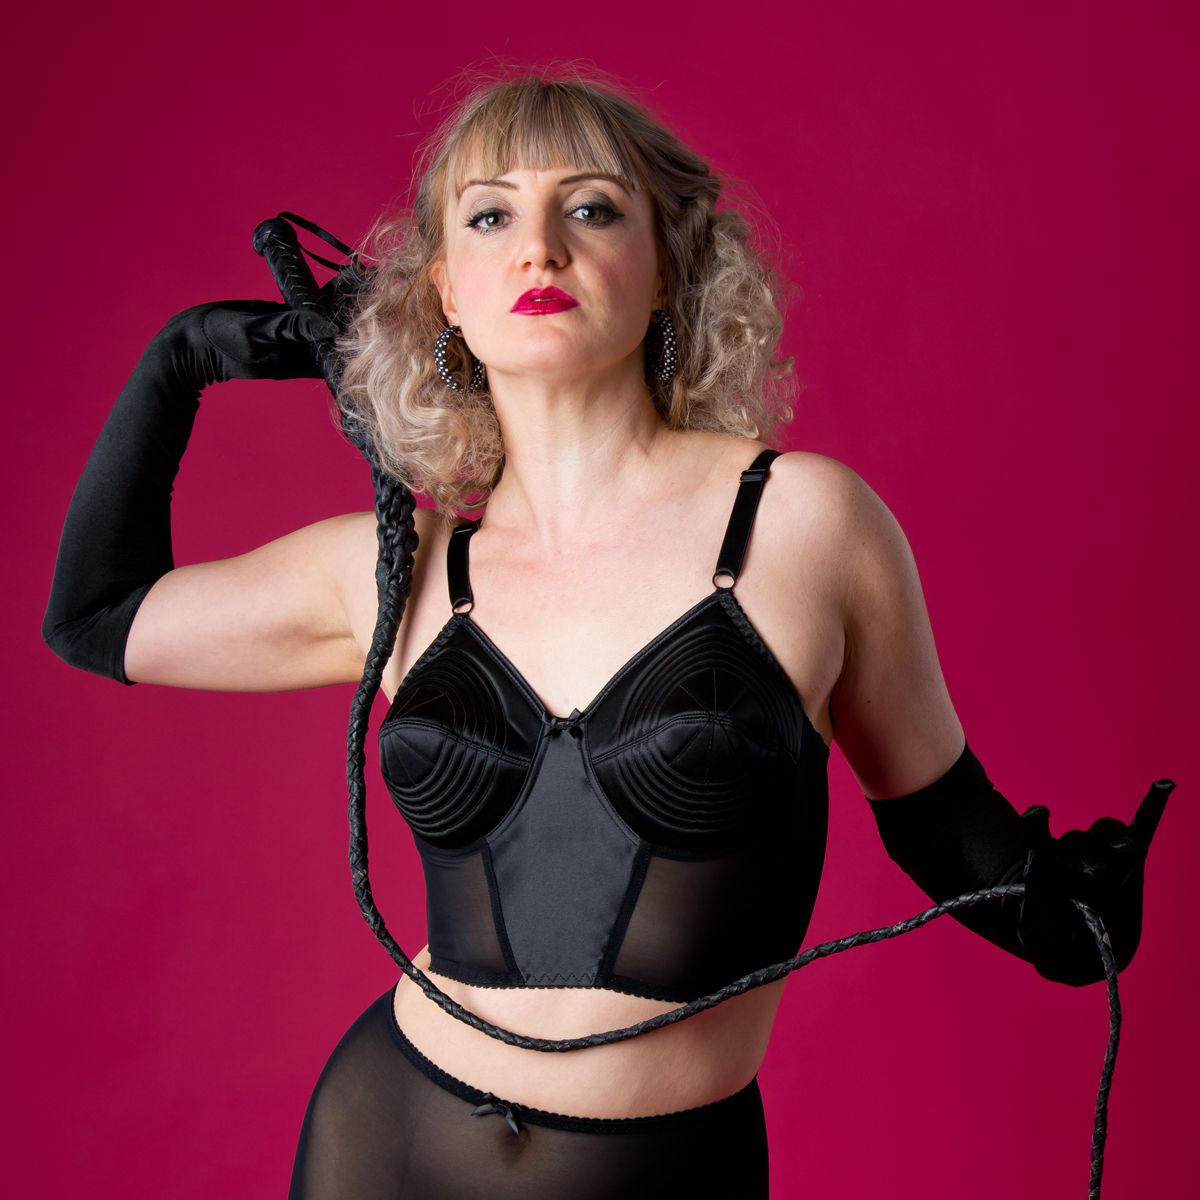 NY1130B_soutien-gorge-bustier-retro-40-s-50-s-pin-up-glamour-bullet-bra